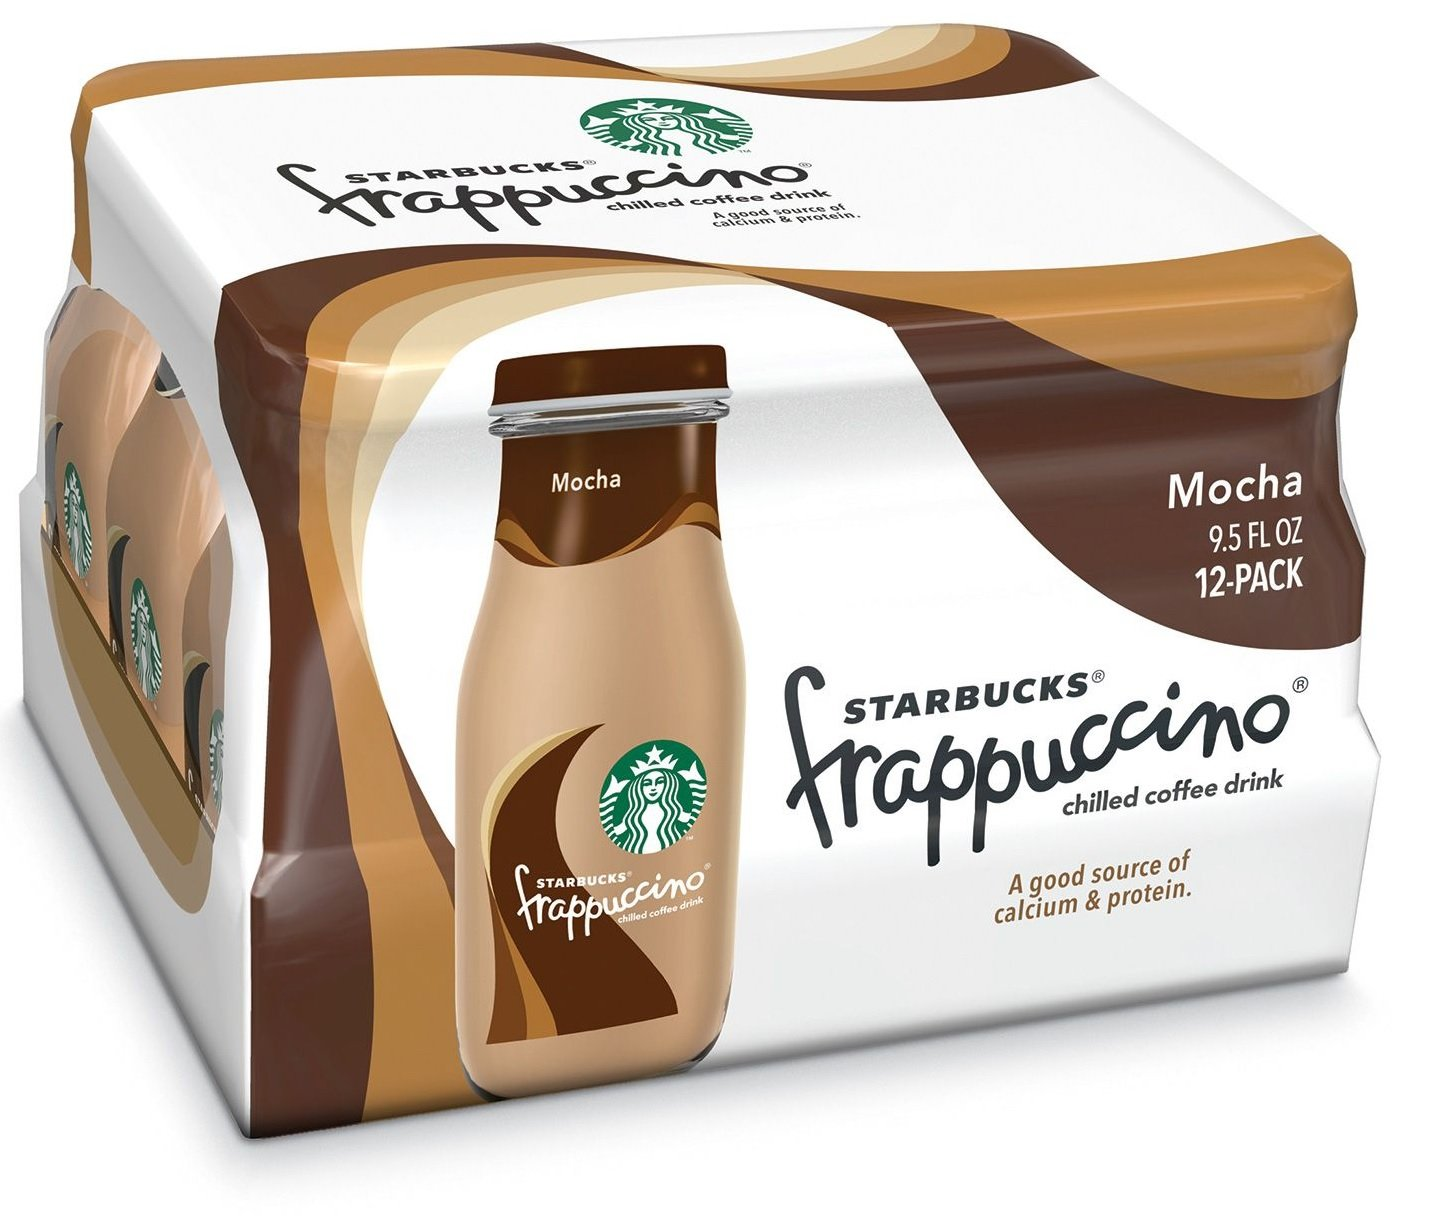 Starbucks frappuccino mocha 9.5 fl oz, Pack of 12: Grocery & Gourmet Food